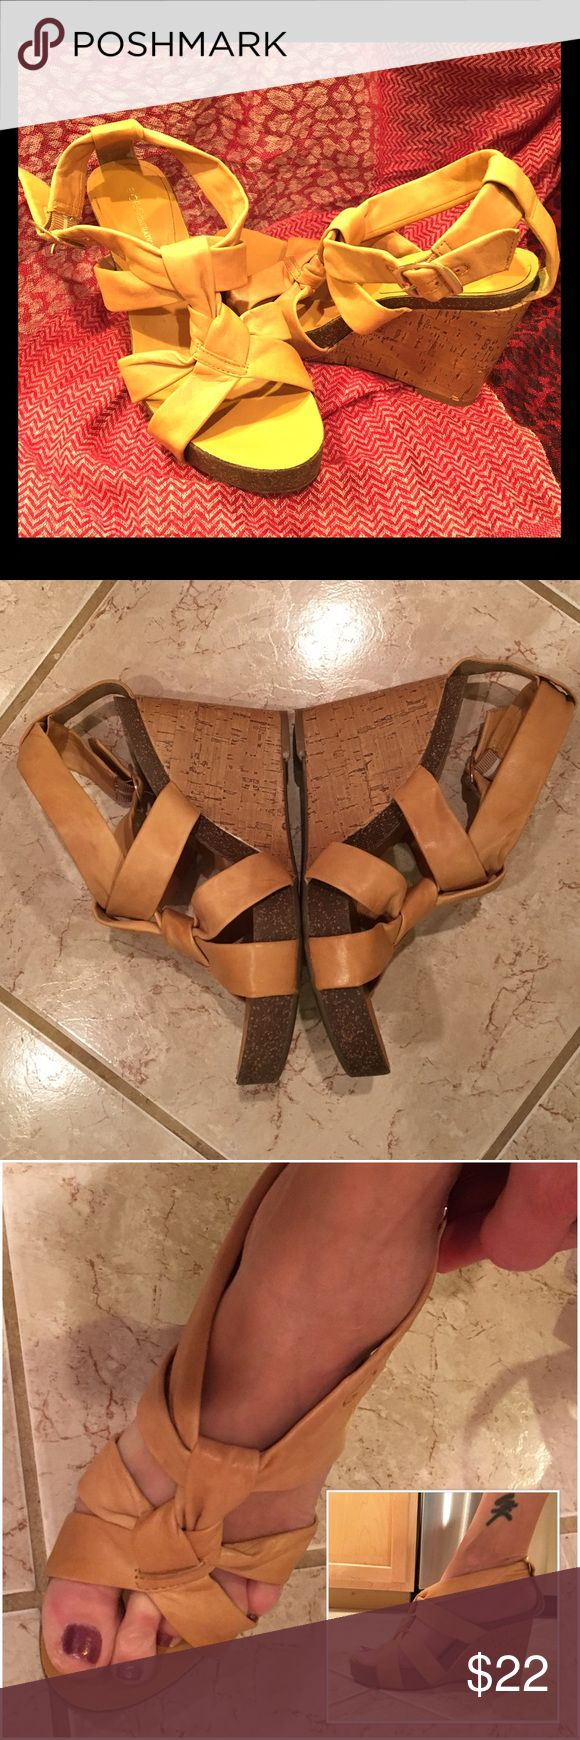 "BCBGeneration Mustard Leather & Cork Wedge Sandals Lovely BCBGeneration sandals with a very soft, supple genuine leather upper and a cork wedge. Mustard yellow in color (2nd and 3rd photos truest to color). Size 7.5B, style ""Talina"". Excellent condition with a few very minor signs of wear. BCBGeneration Shoes Wedges"